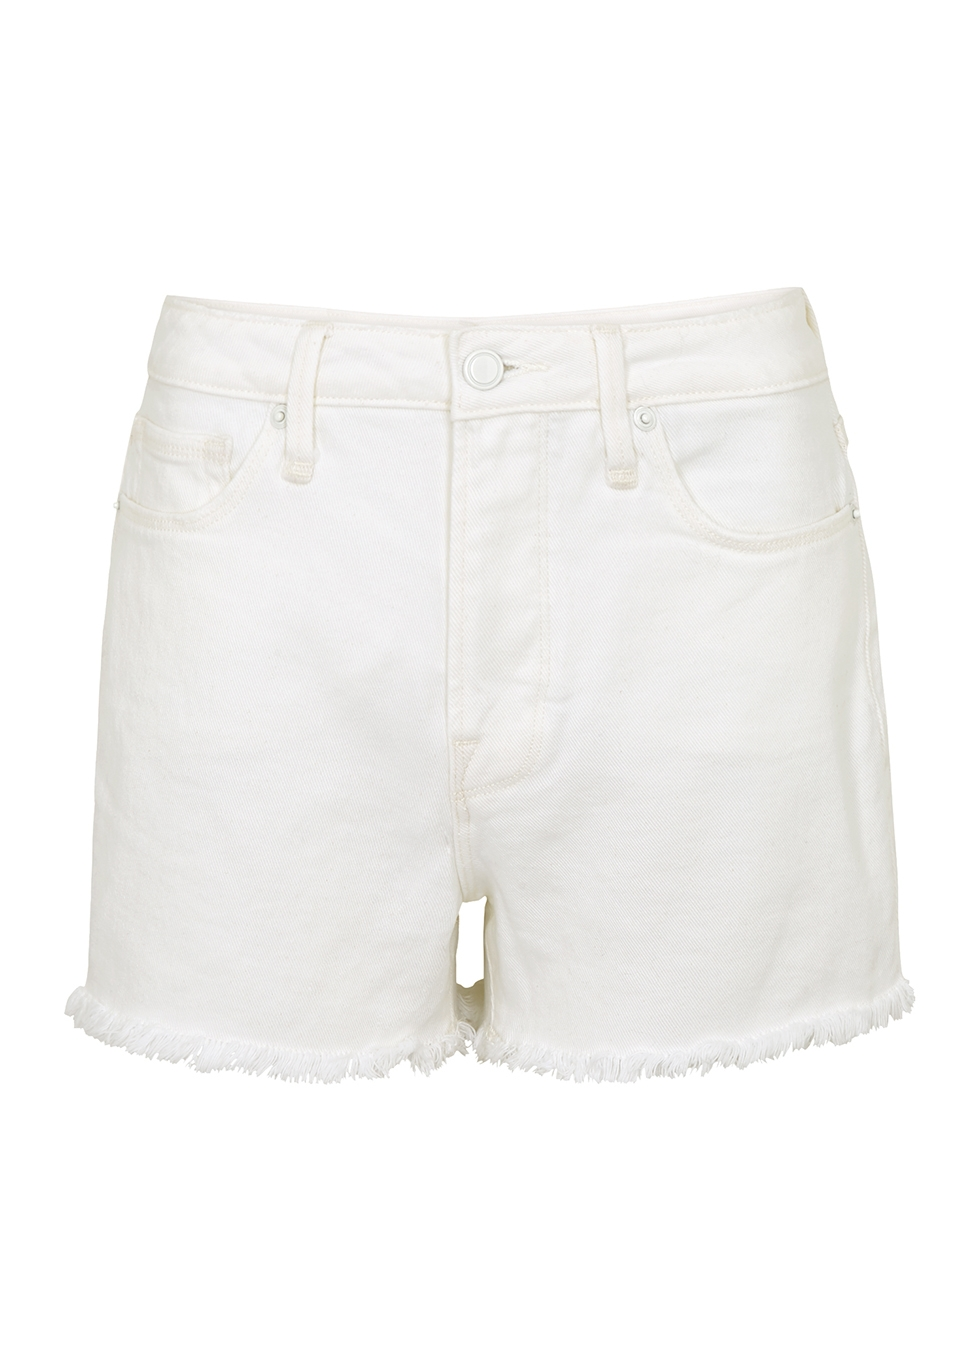 Porkchop white denim shorts